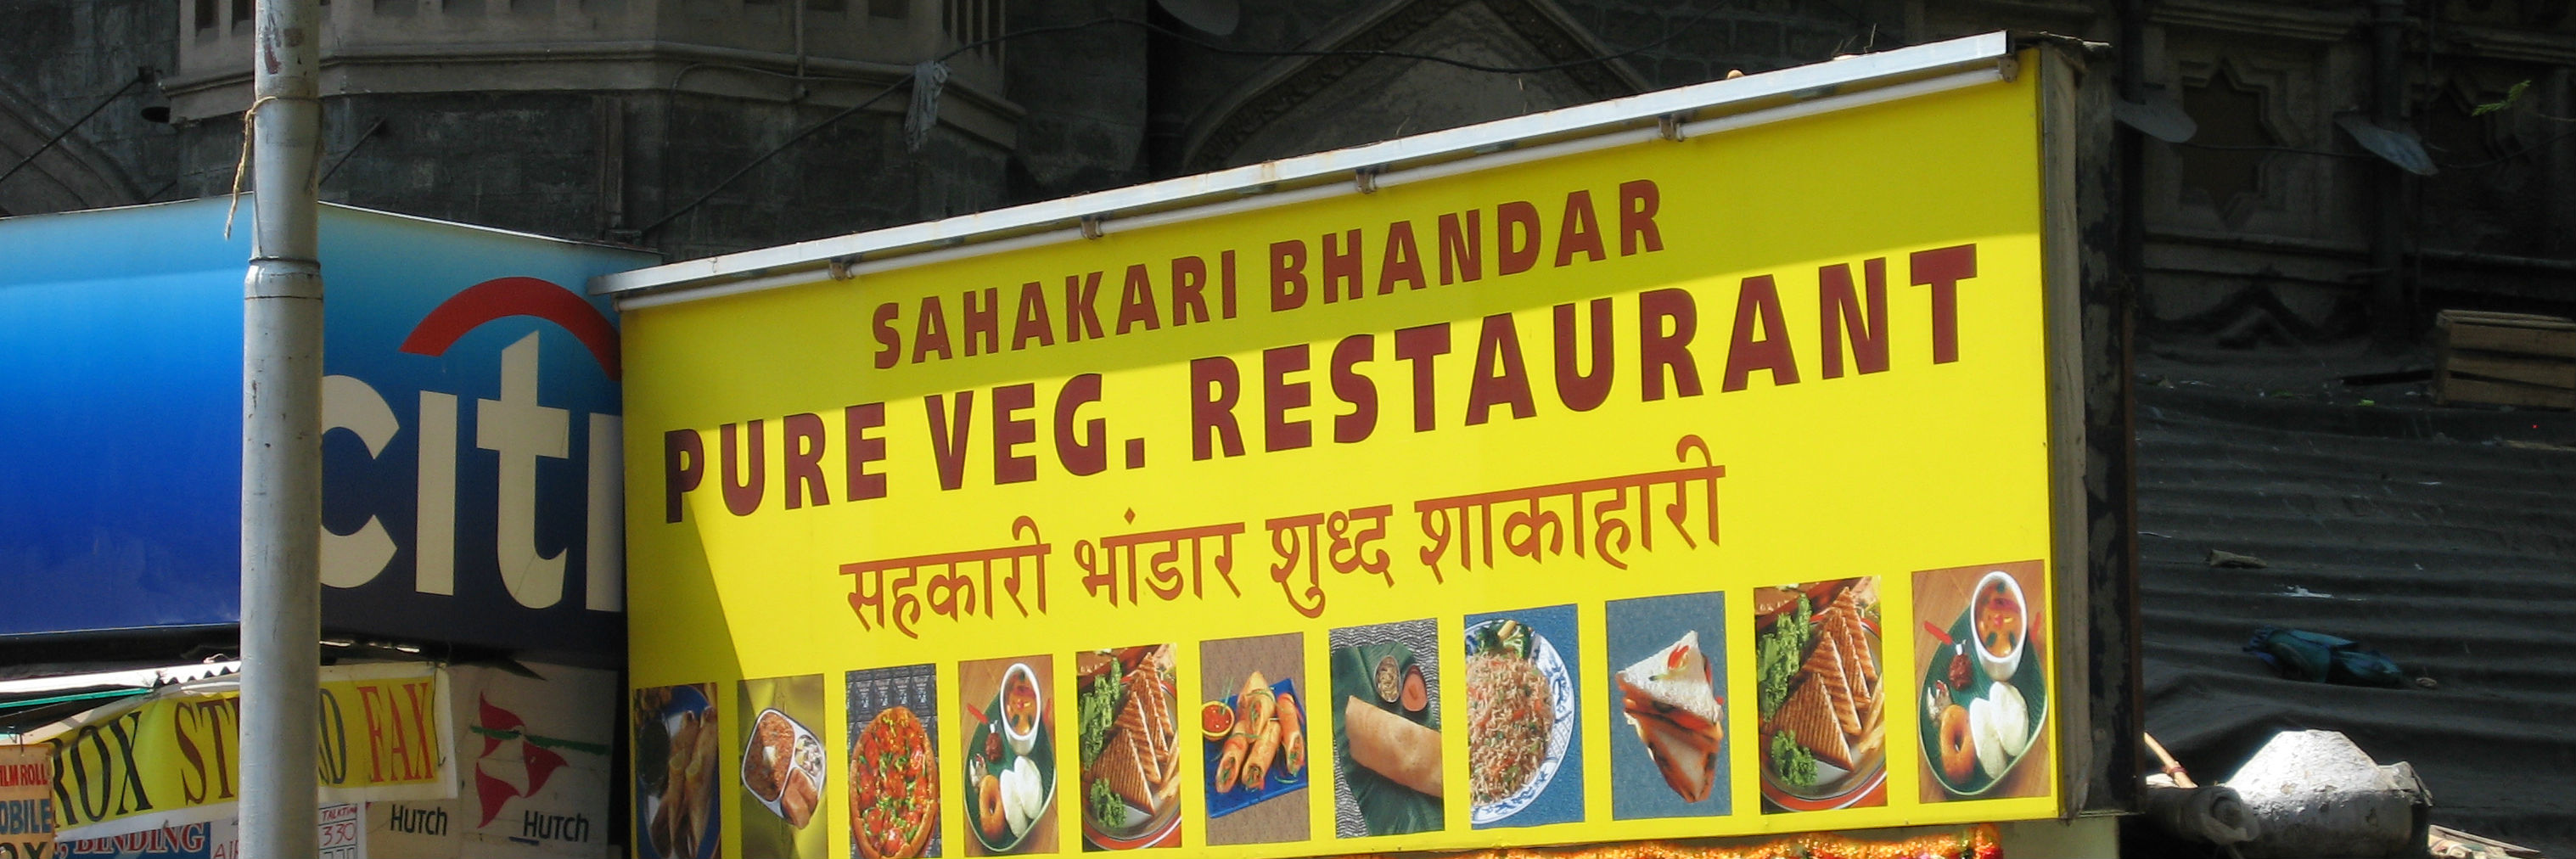 Upper Caste Dominance and the Political History of Gujarat's Conversion to Vegetarianism